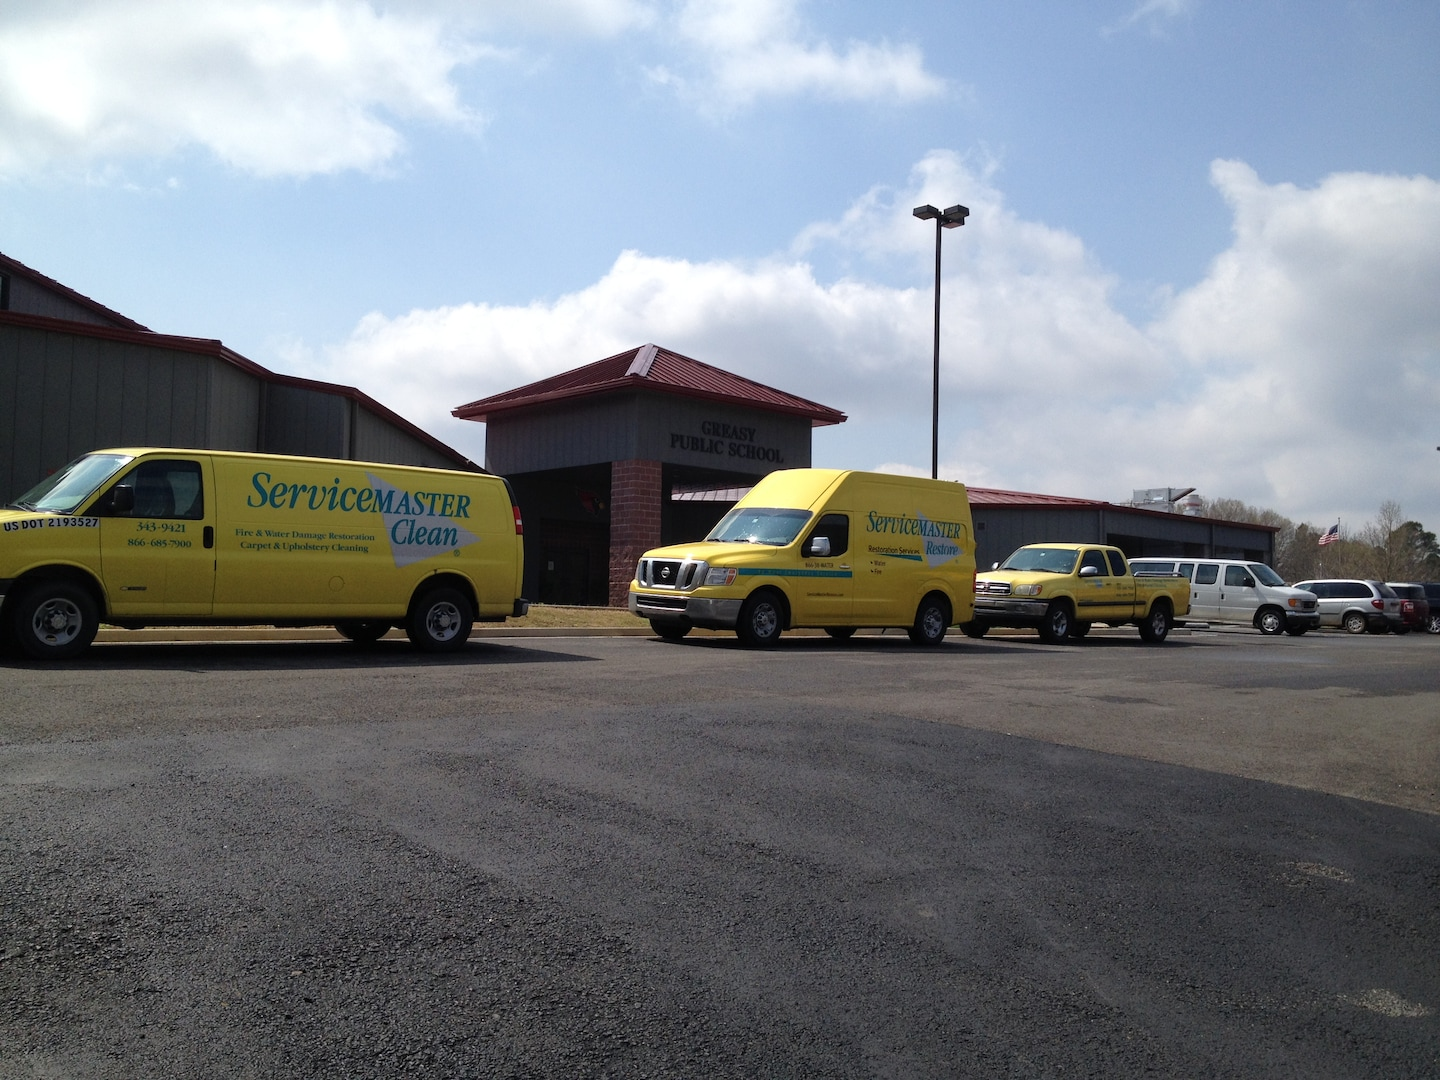 Servicemaster Extreme Recovery Services